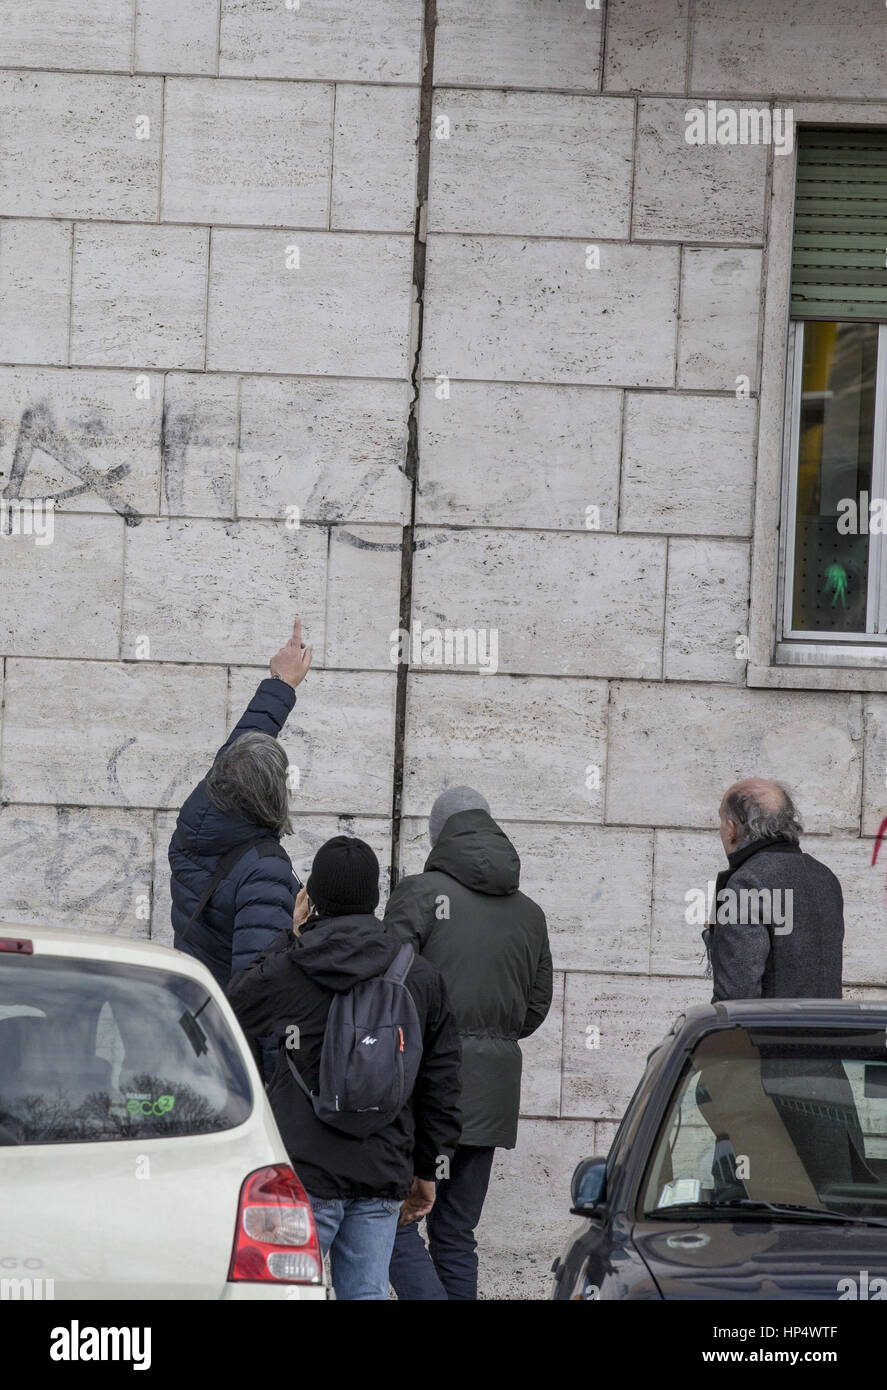 Three 'strong' earthquakes were felt in central Italy in the space of an hour, with people in Rome saying - Stock Image